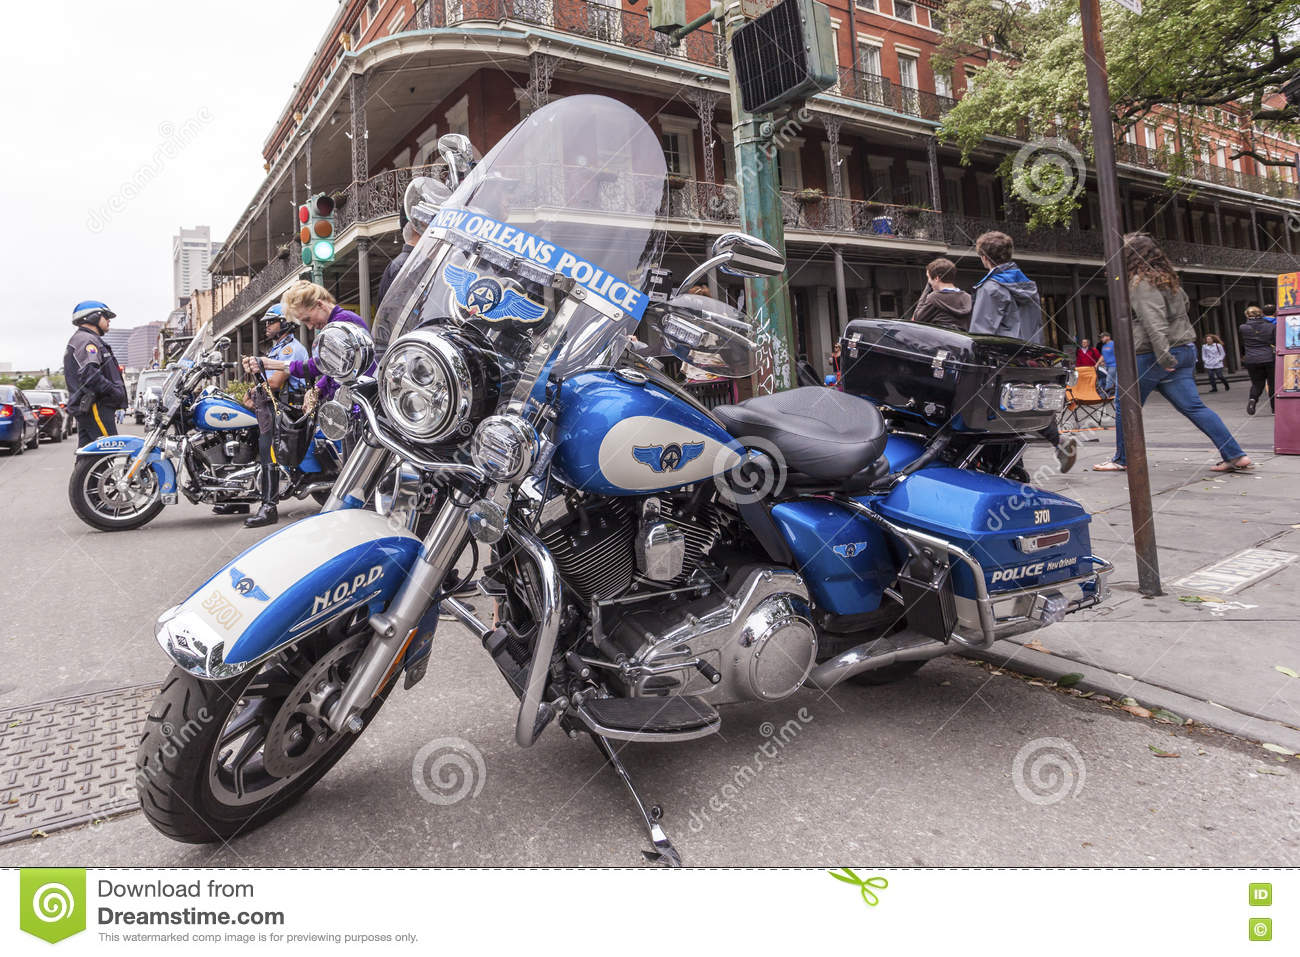 New Orleans Police Motorcycle